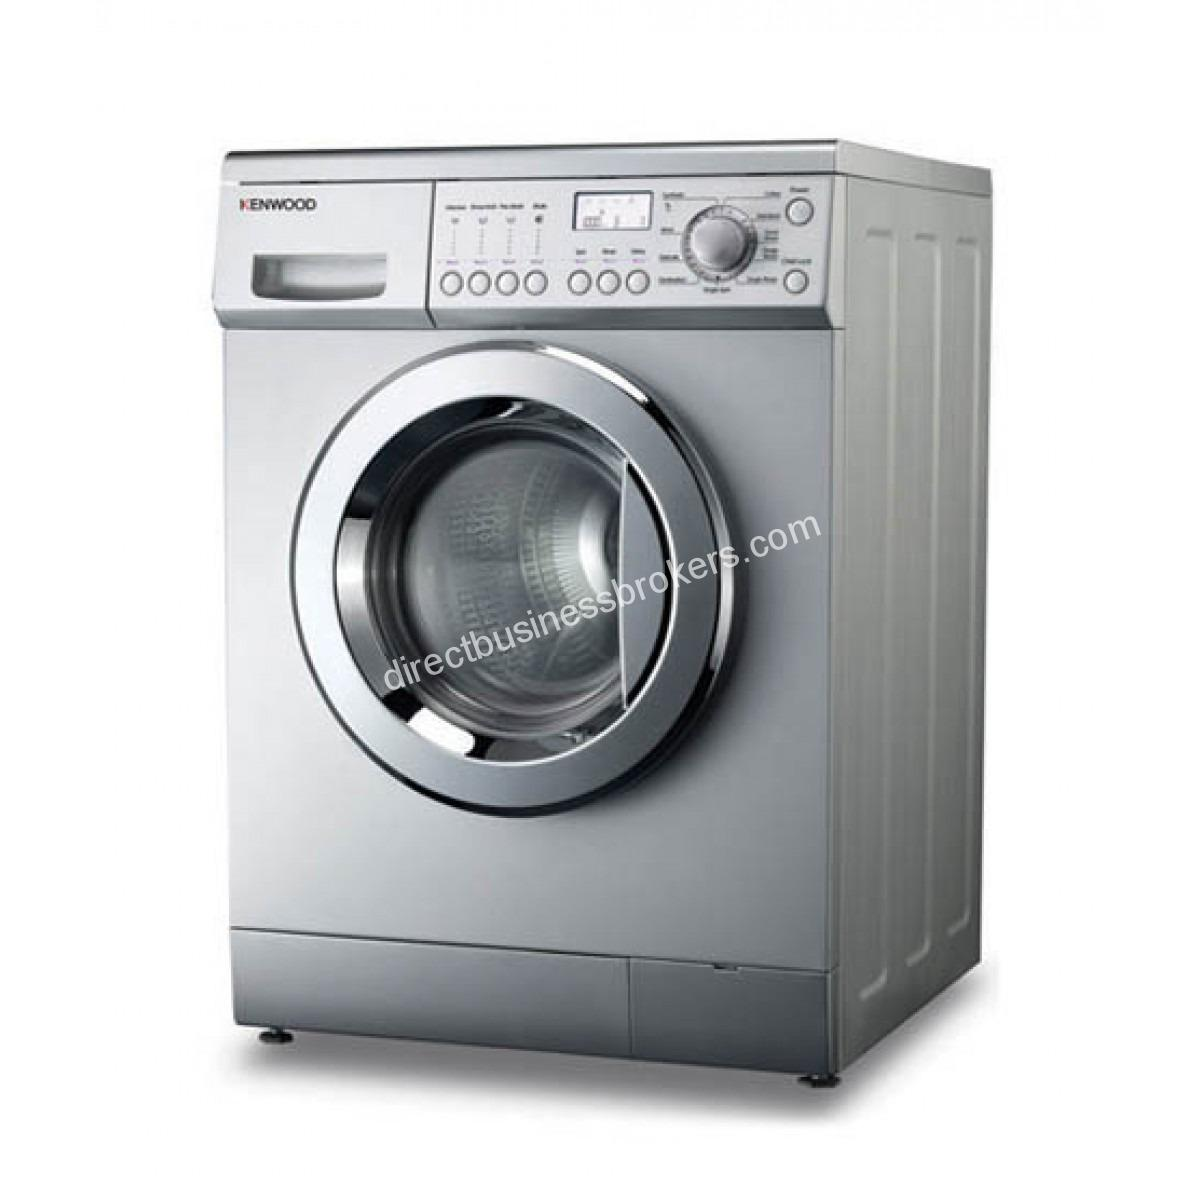 Laundry and Dry Cleaning Opportunity (1048)